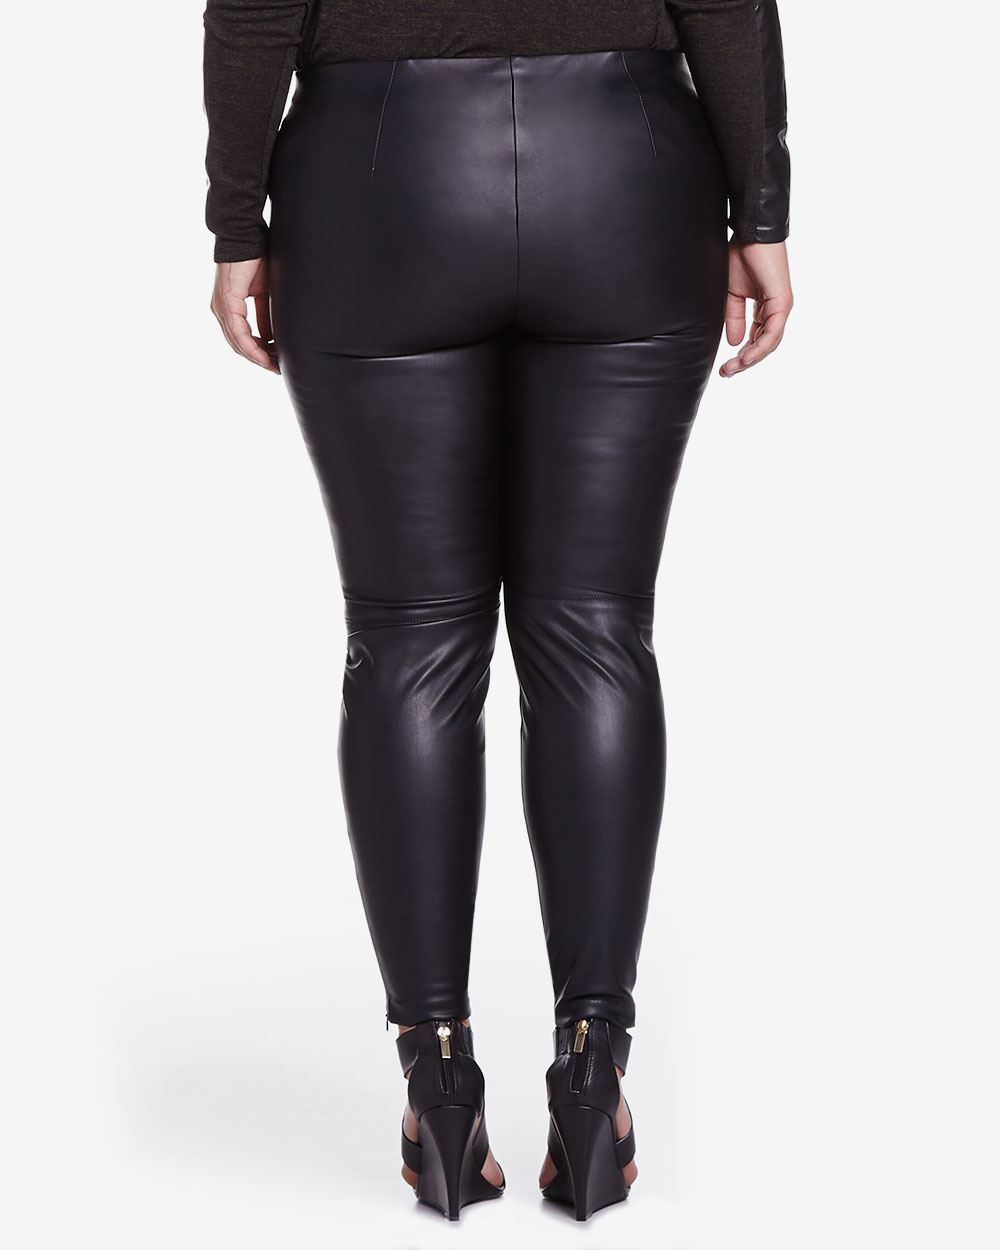 Buy the latest plus size leather pants cheap shop fashion style with free shipping, and check out our daily updated new arrival plus size leather pants at tennesseemyblogw0.cf